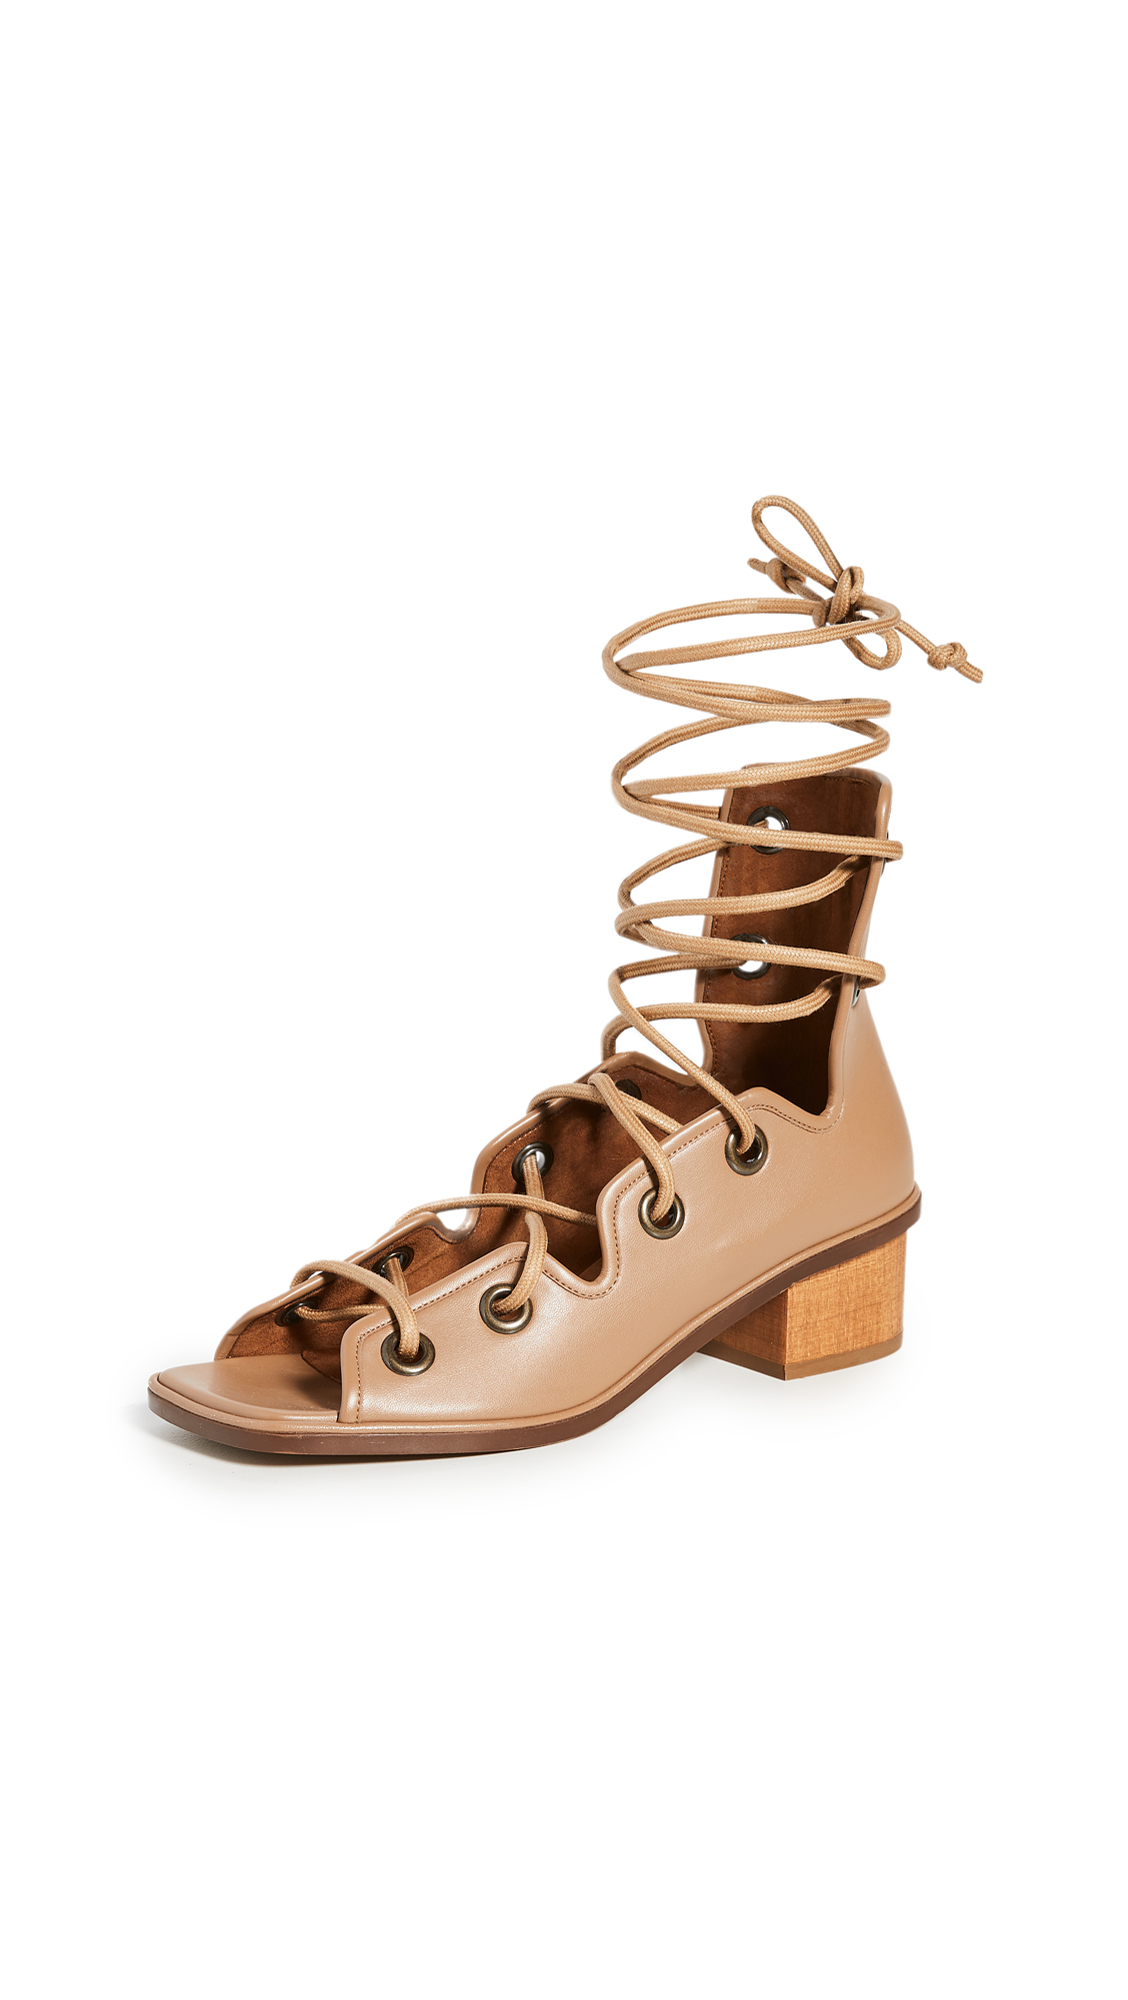 Stella McCartney Maia Strings Sandals – 40% Off Sale